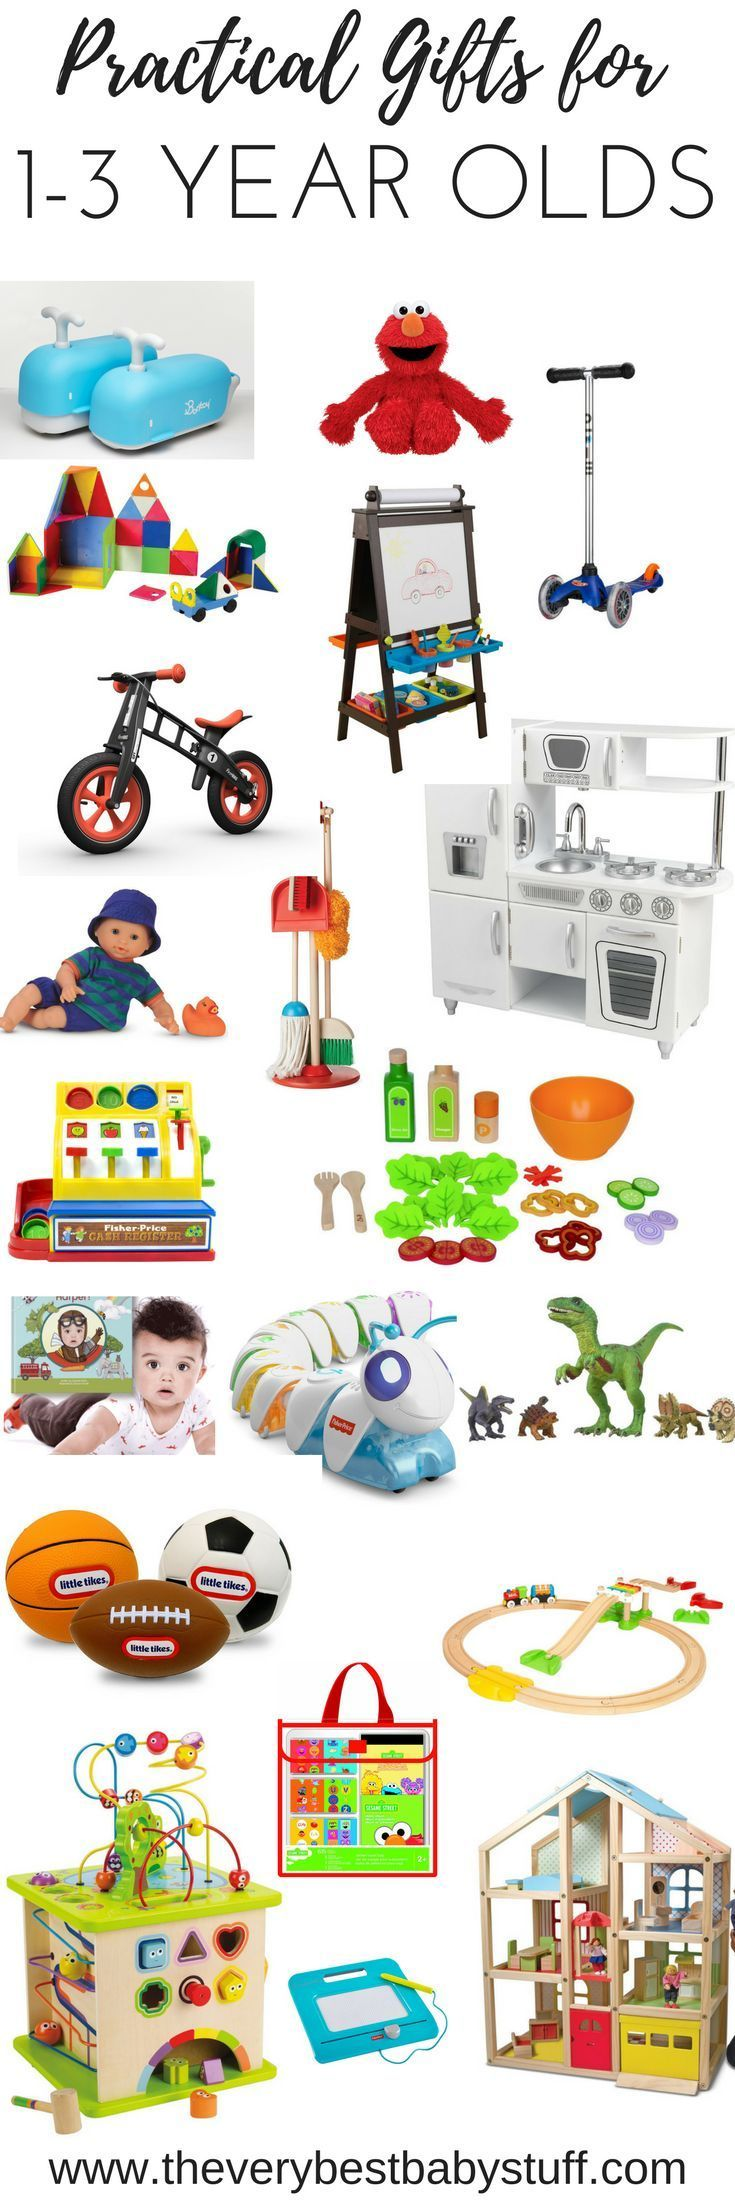 2016 holiday gift guide for one to three year olds.  Toddler gift guide.  Birthday present.  Scooter.  Magna-tiles.  Easel. Friendimal. Elmo. Stickers, Play kitchen, Hape, kitchen accessories, green toys, sticker, art supplies, kiwi crate, costume, dress up, magna doodle, schleich, dinosaur toy.  Practical gifts. Niece gift, nephew gift